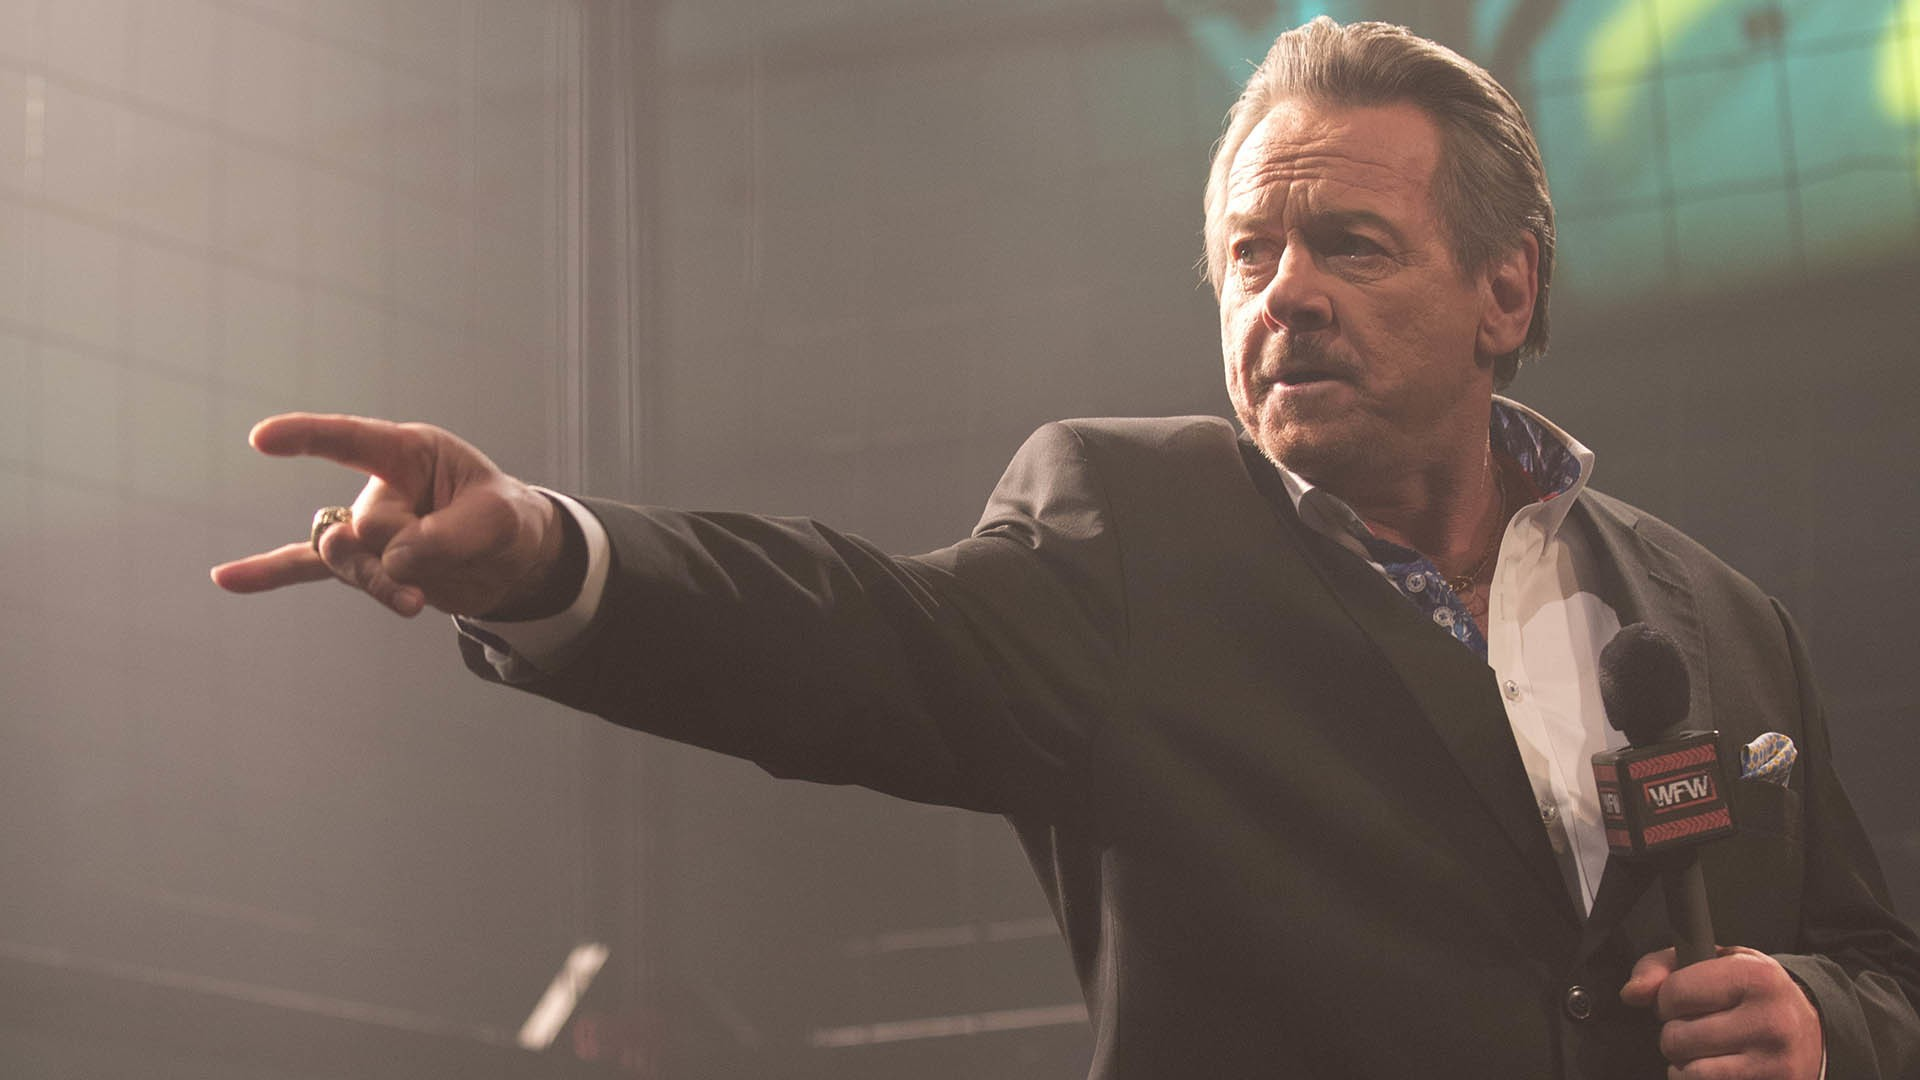 Rod's Not Dead, Or Roddy Piper's Christian Cinema Swan Song